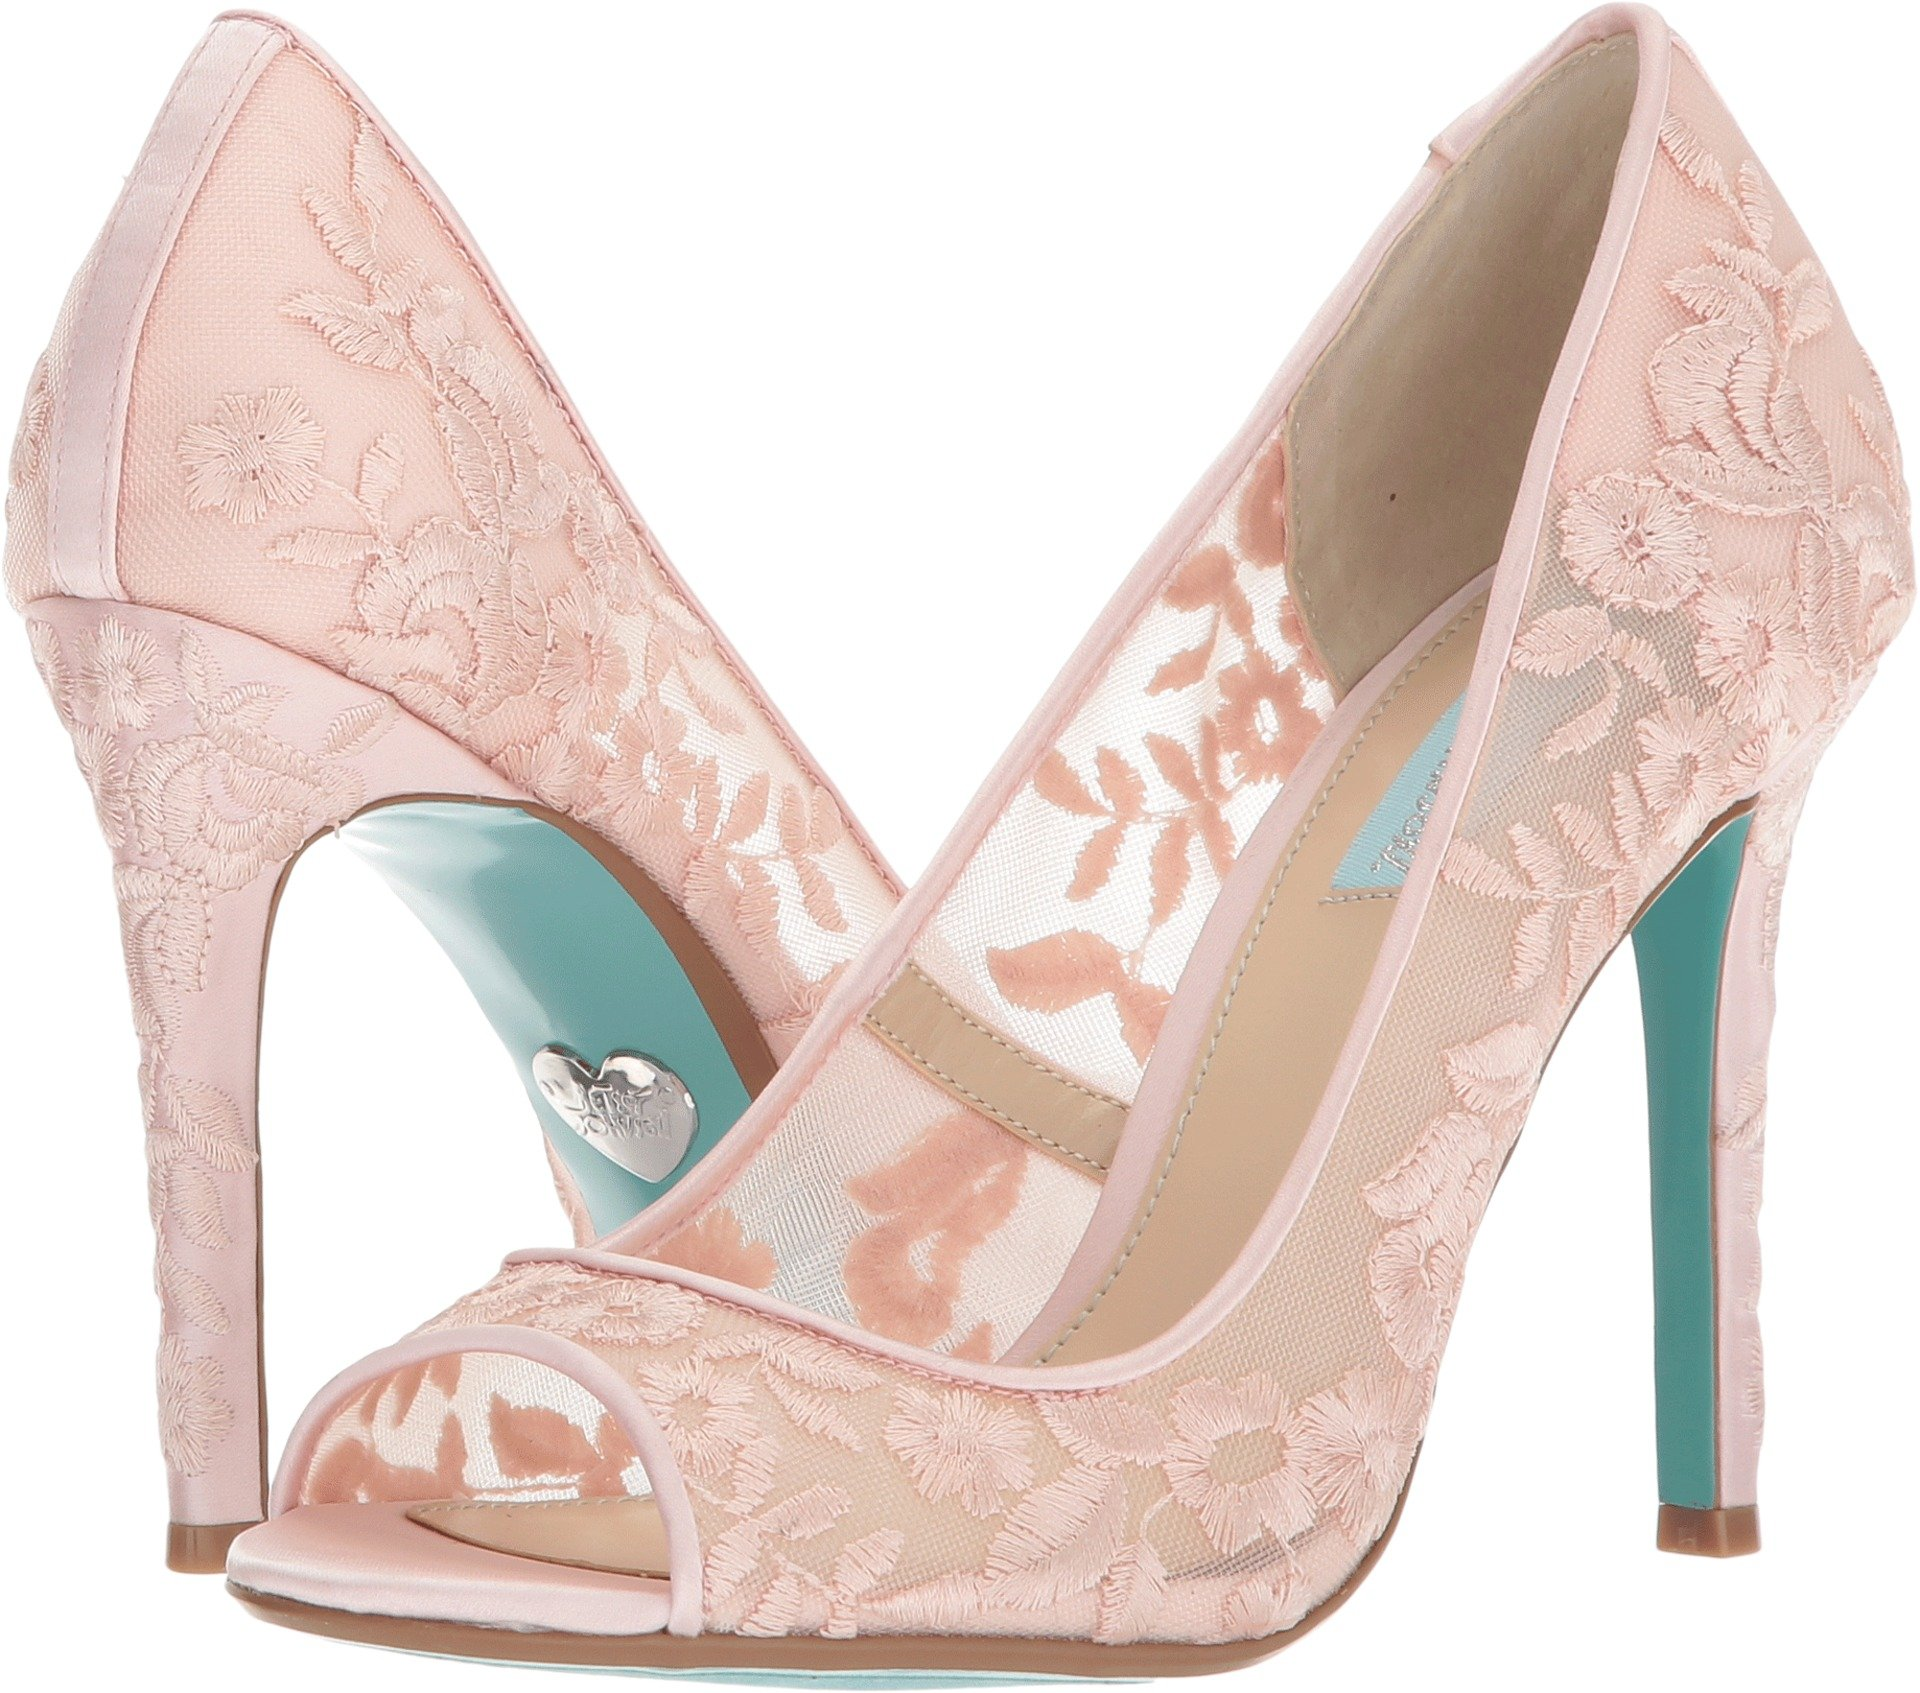 Blue by Betsey Johnson Womens Adley Blush 7 M